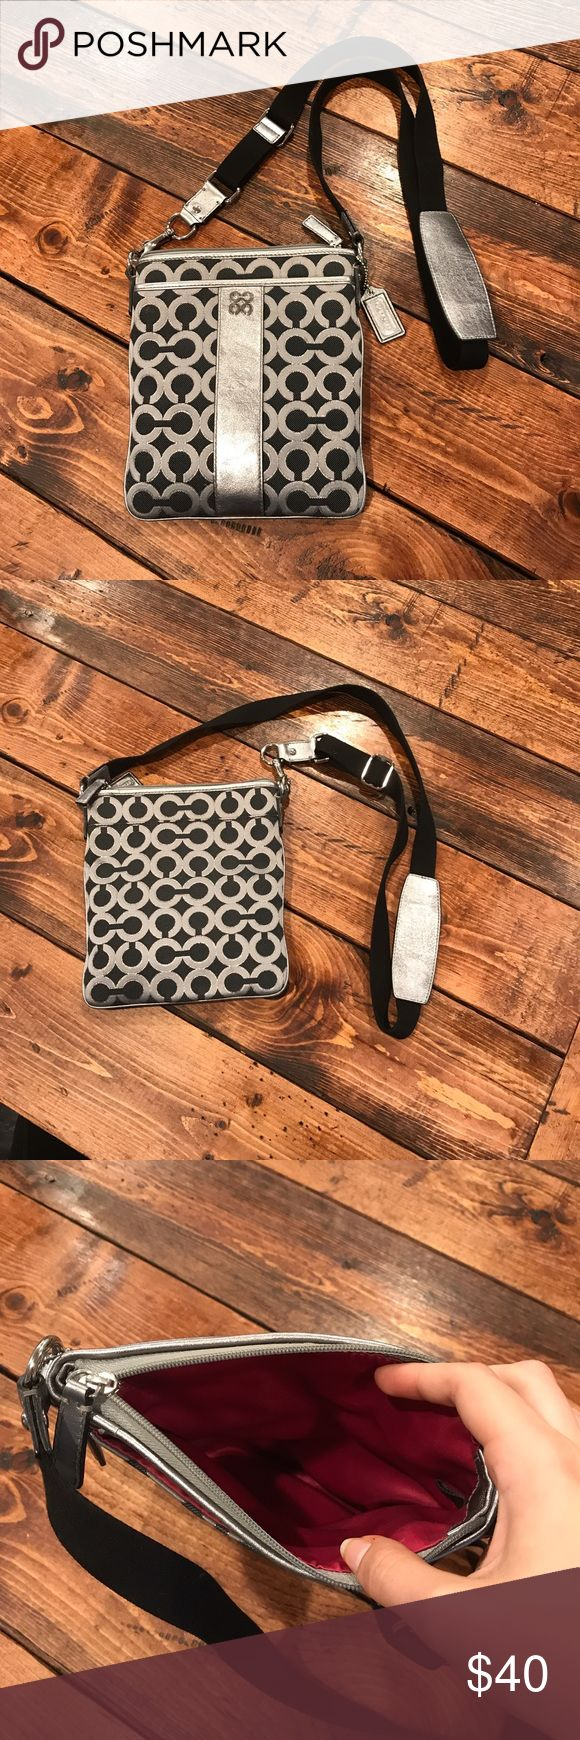 Silver Coach swingpack crossbody Silver Coach bag with purple lining with the Julia OP art pattern. Bag is in good used condition. Reasonable offers accepted! Coach Bags Crossbody Bags